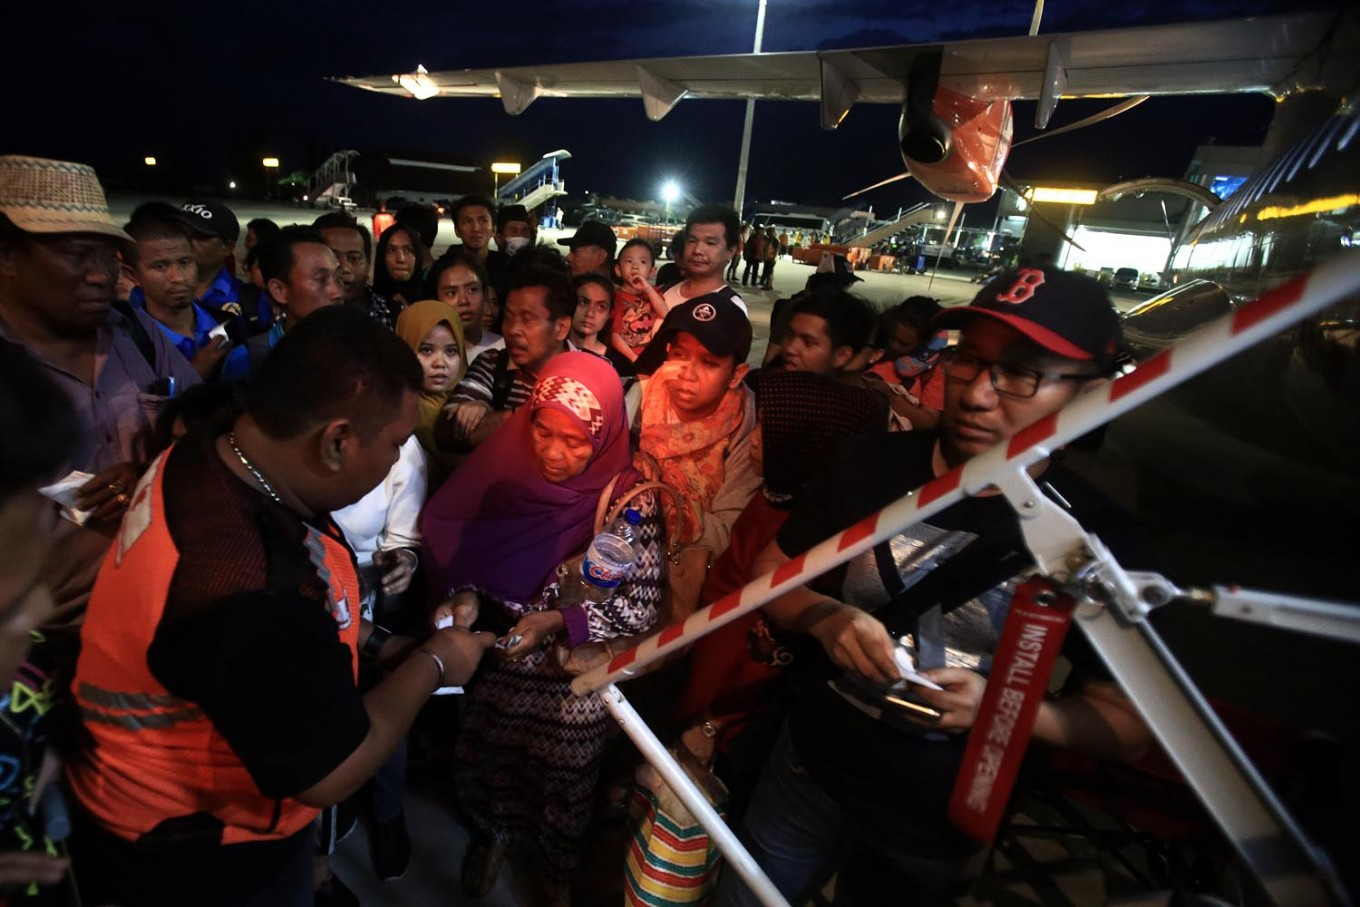 Survivors line up before boarding a military aircraft at the Mutiara SIS Al-Jufrie Airport in Palu, Central Sulawesi, on Tuesday, October 2, 2018. JP/Dhoni Setiawan